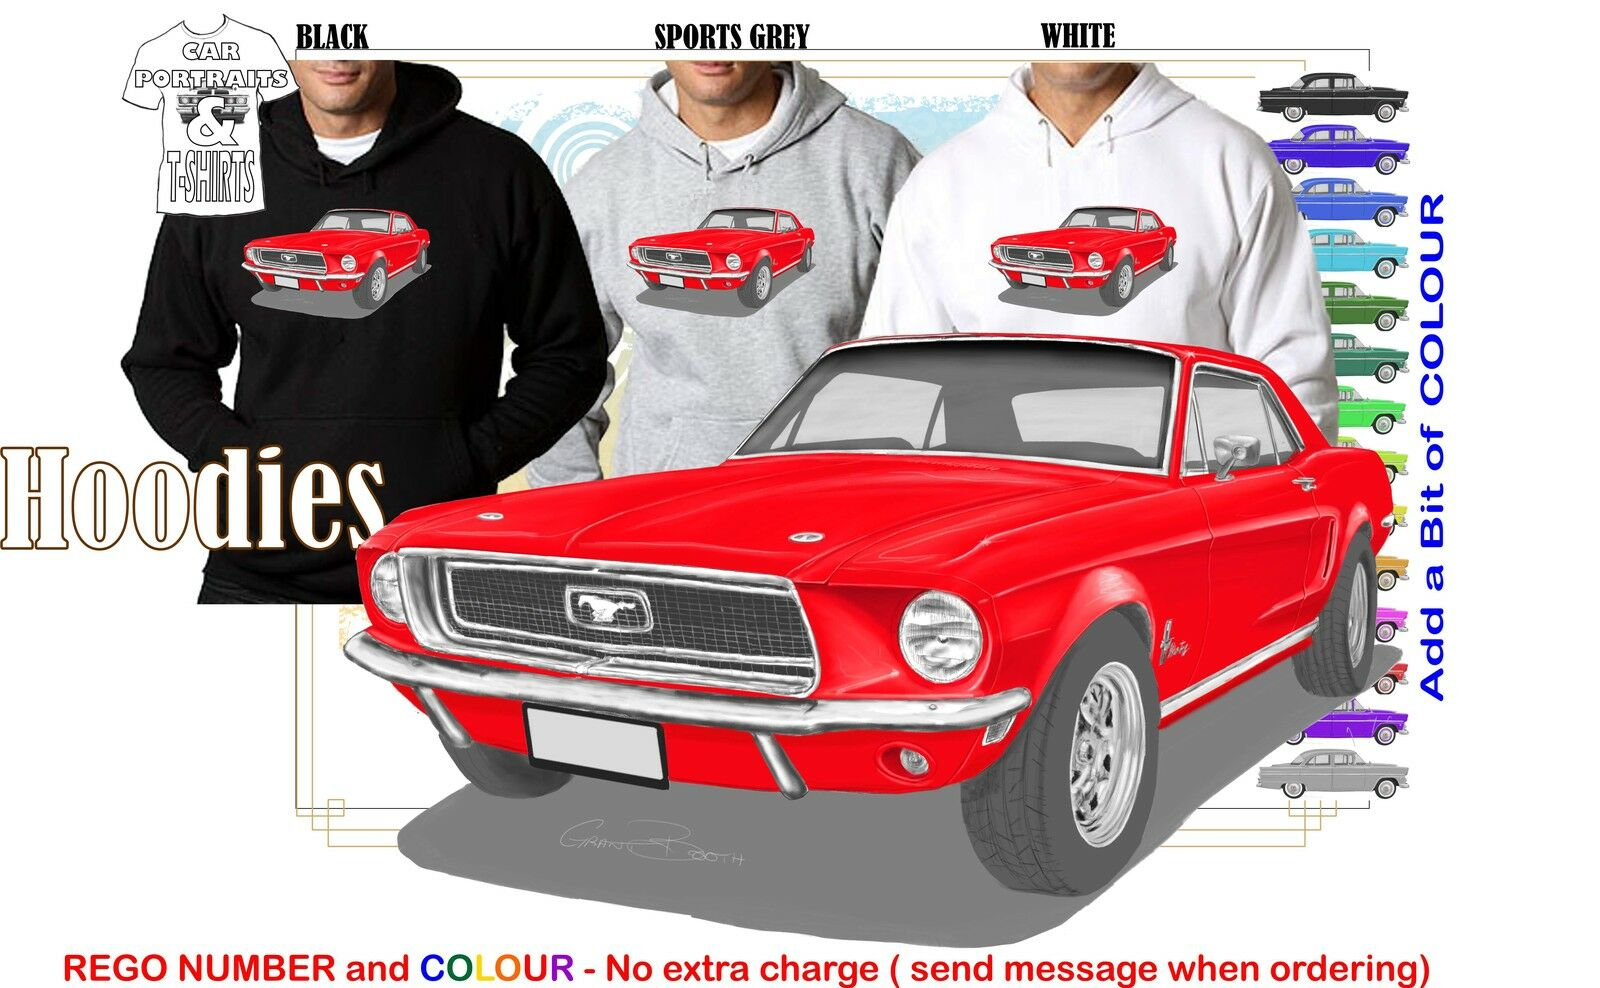 68 MUSTANG COUPE HOODIE ILLUSTRATED CLASSIC RETRO MUSCLE SPORTS CAR